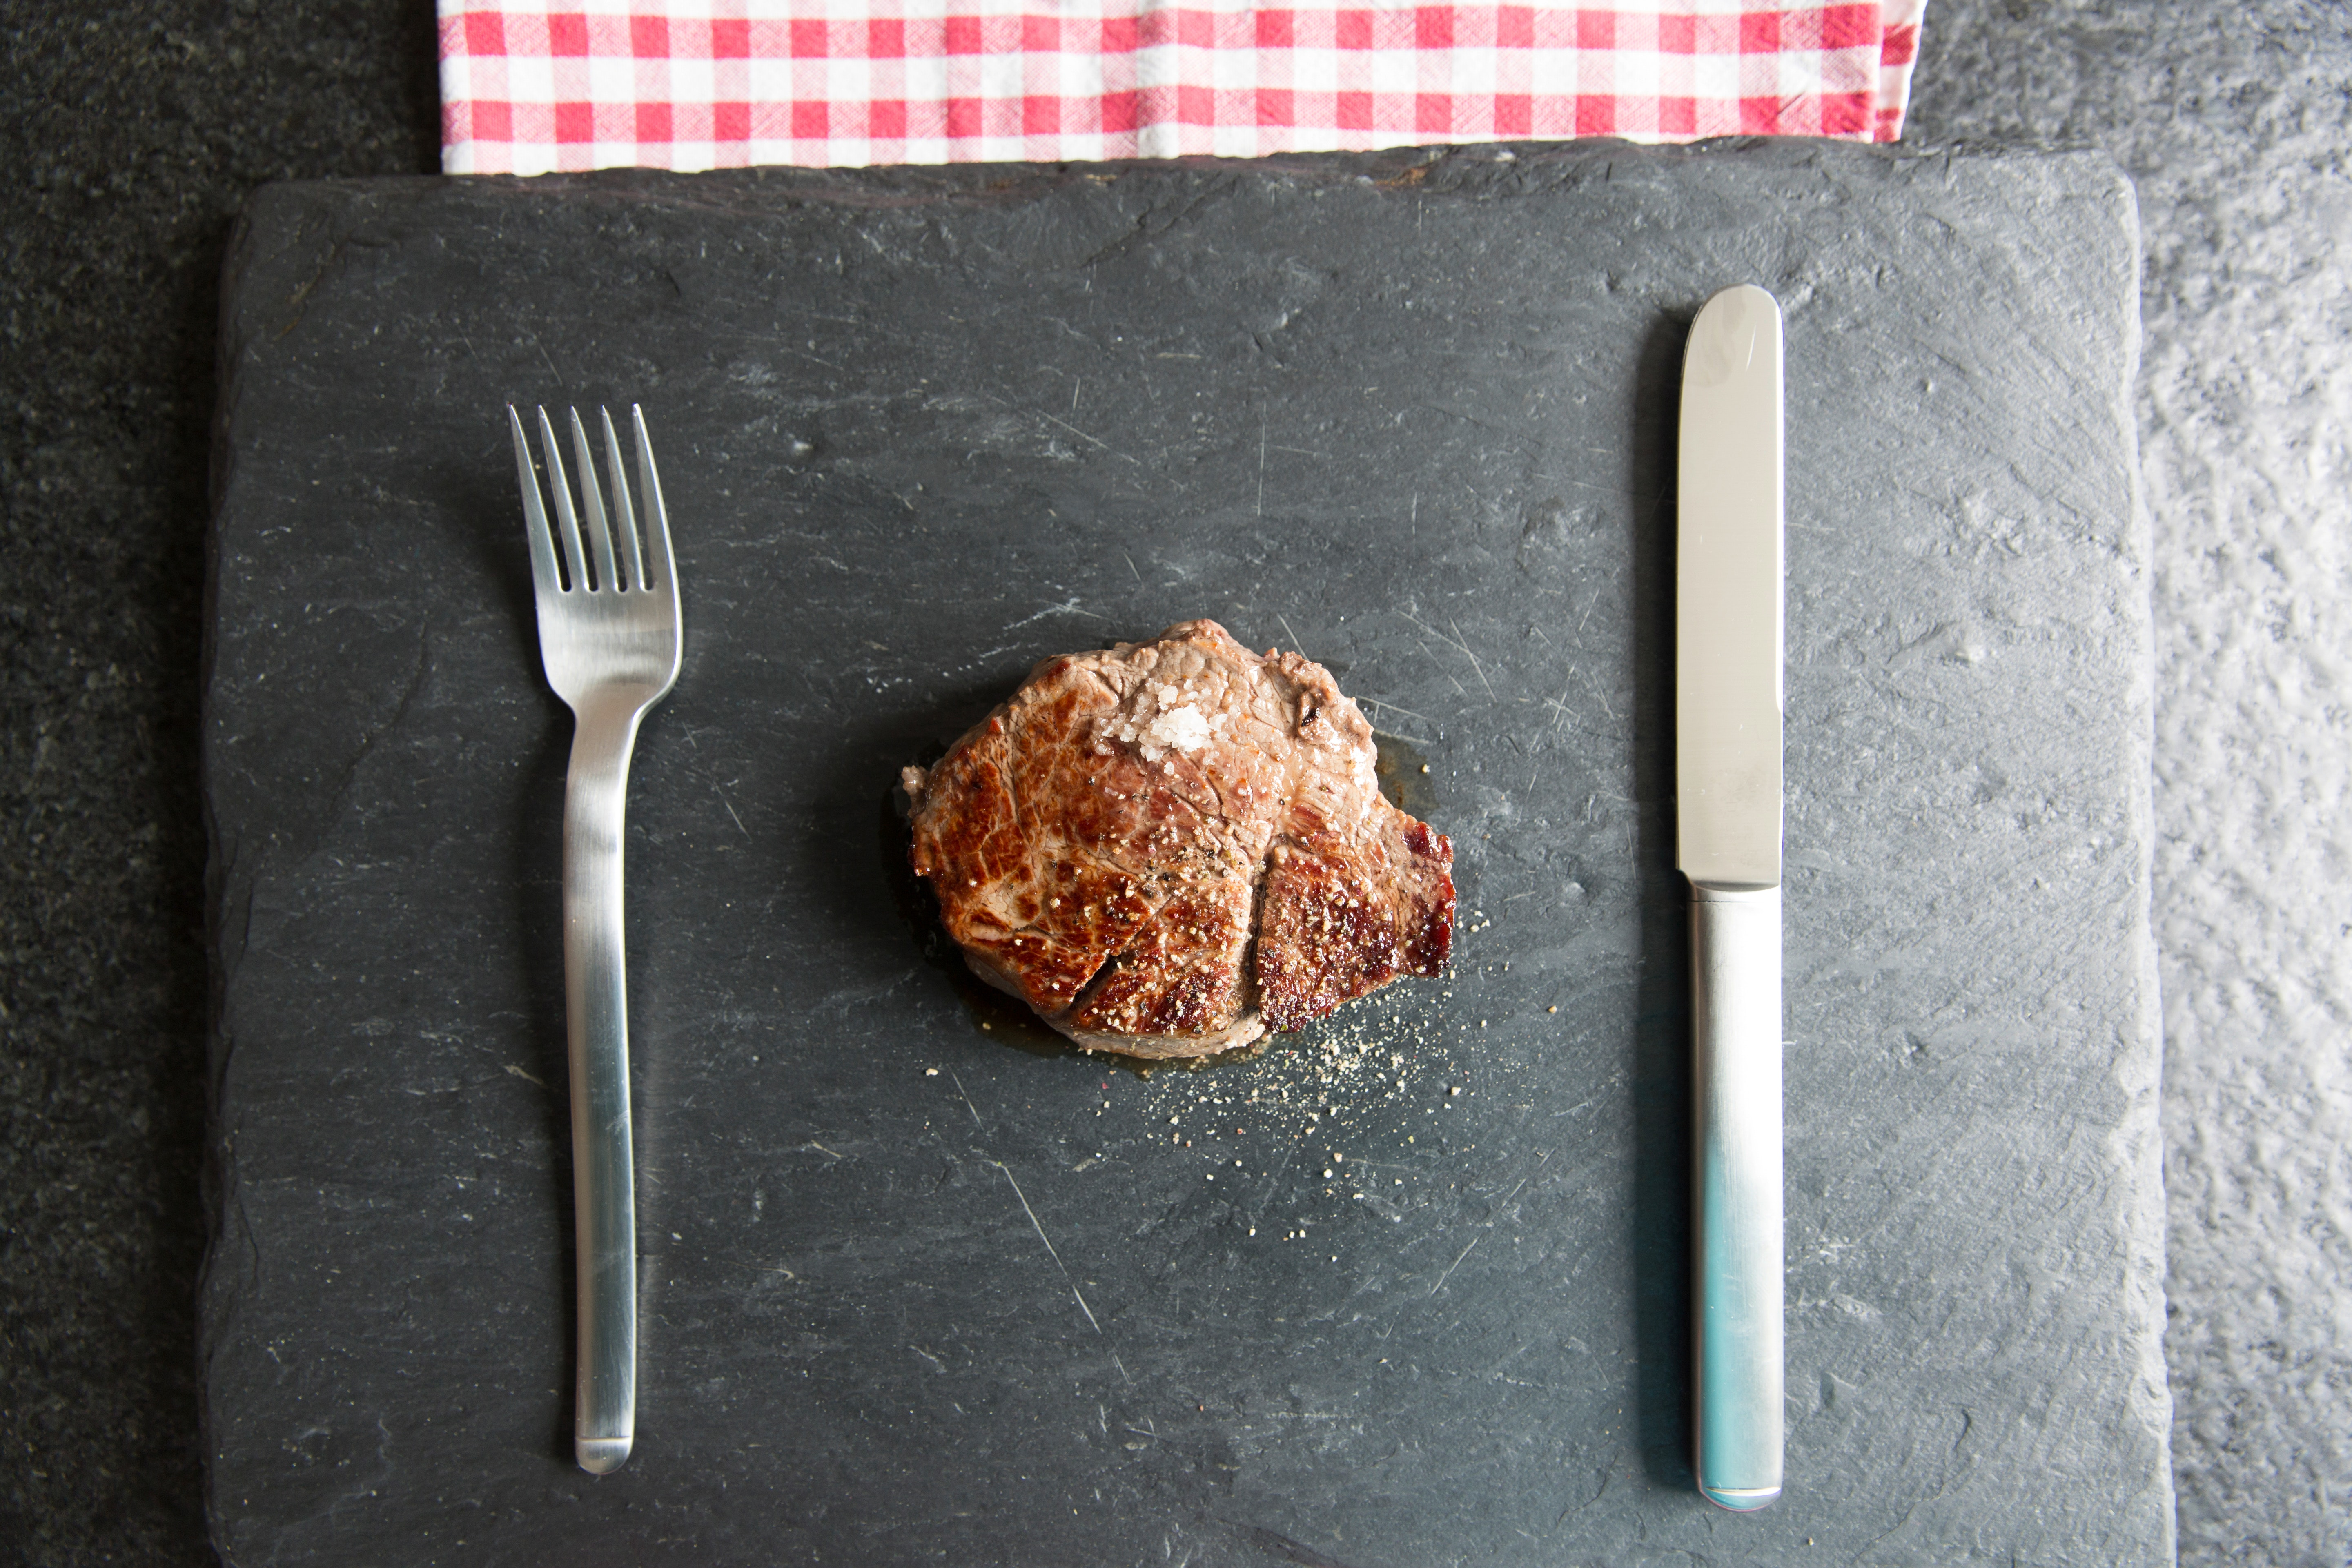 Stainless steel fork near grill meat photo